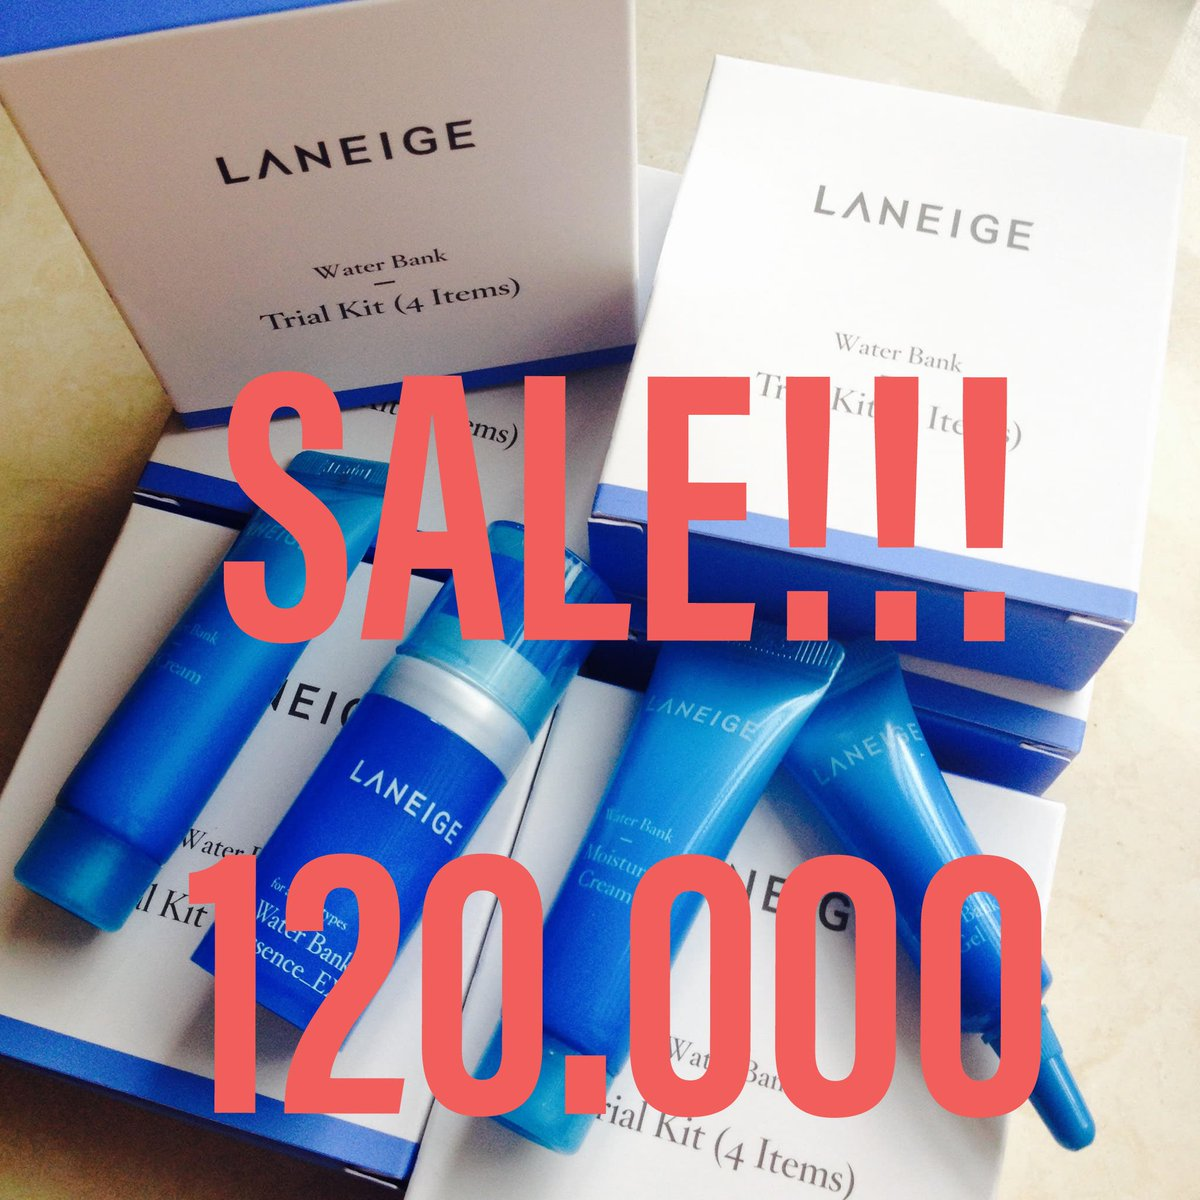 Laneigeready Hashtag On Twitter Laneige White Plus Renew Trial Kit 4 Items 1 Reply 0 Retweets Likes